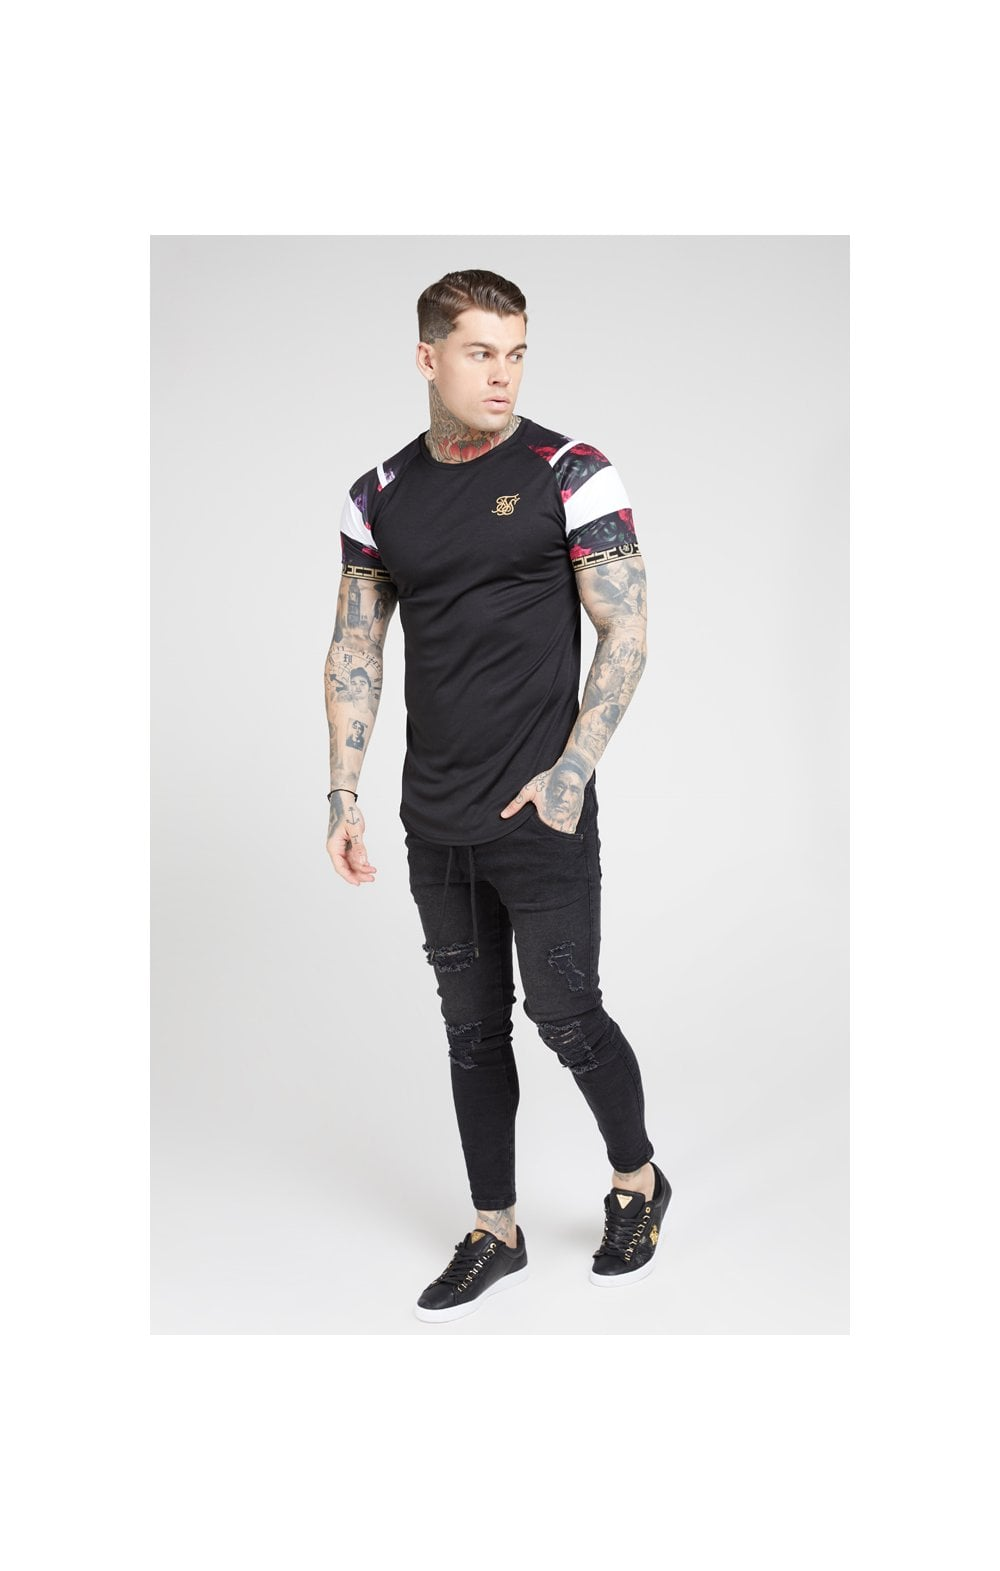 SikSilk S/S Raglan Sprint Tape Tee - Black & Oil Paint (2)